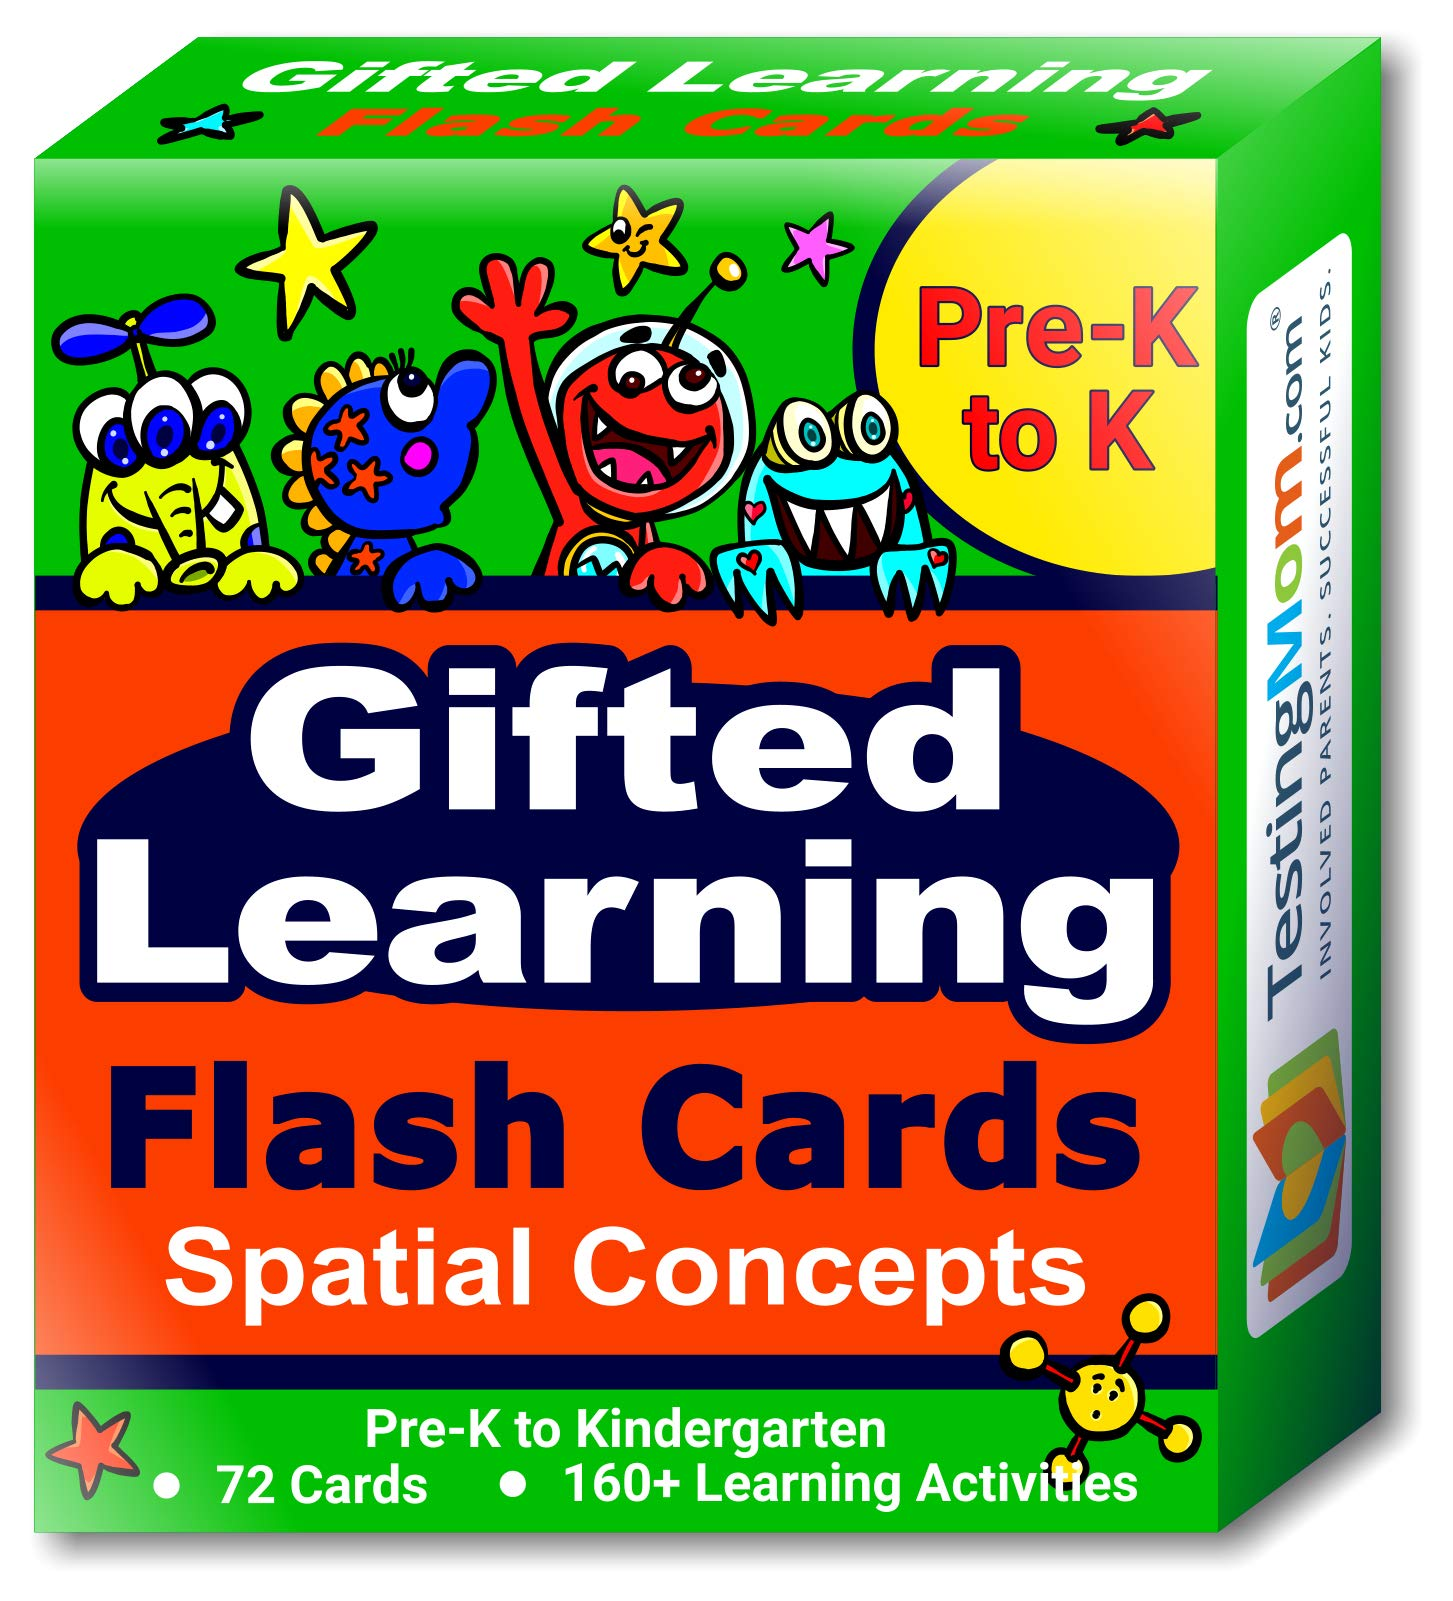 Gifted Learning Flash Cards - Visual Spatial Concepts for Pre-K - Kindergarten - 1st Grade - Educational Practice for The NNAT Test, CogAT Test, OLSAT Test, WPPSI, WISC, AABL, KBIT, SAGES and More! by TestingMom.com